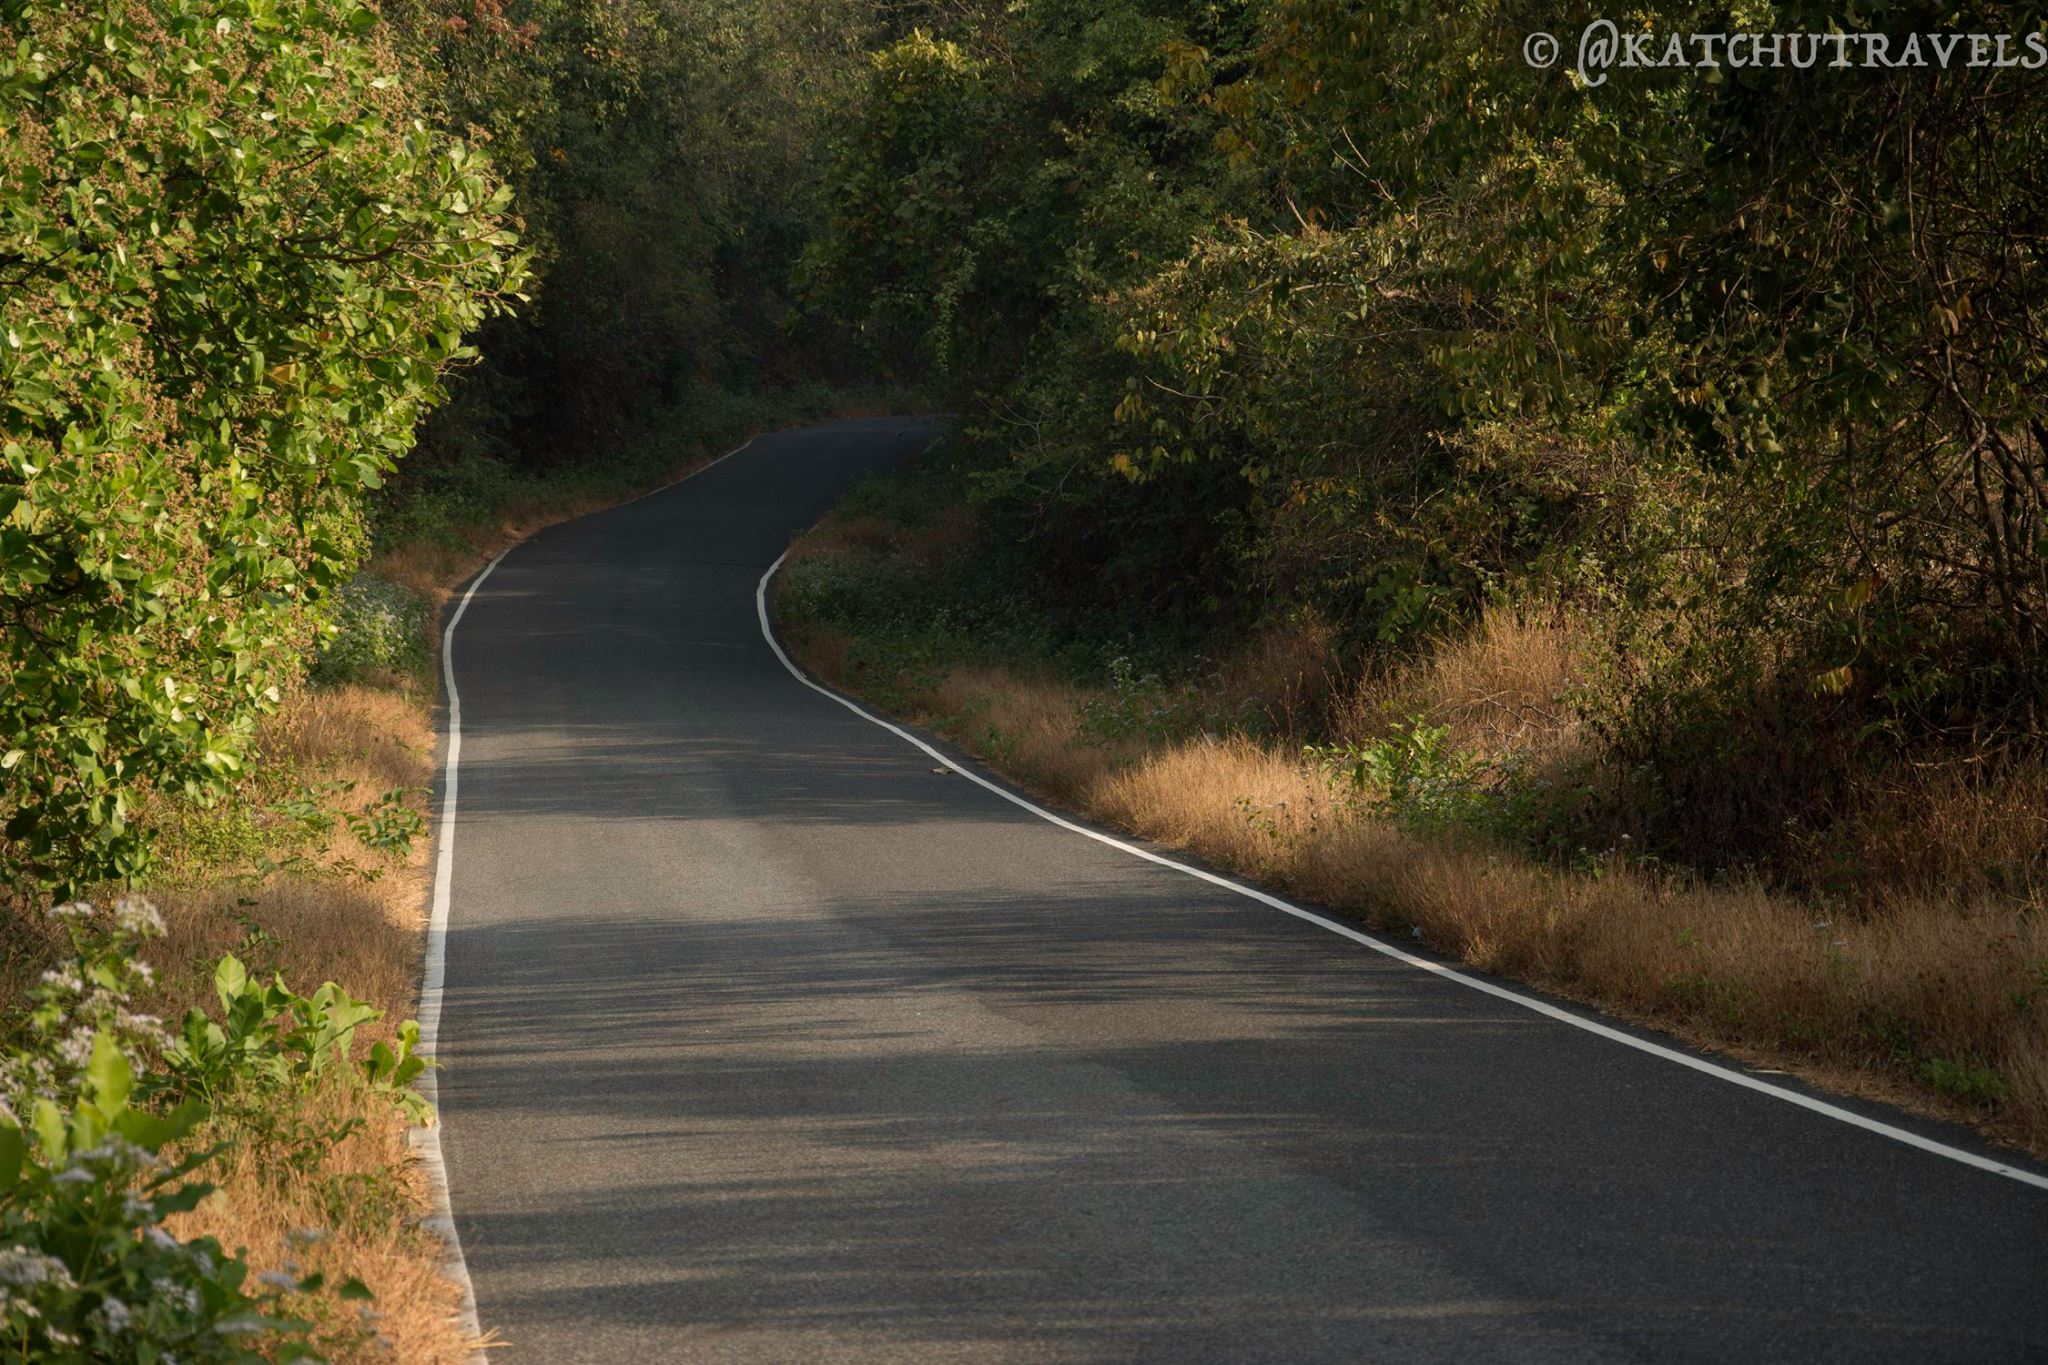 The curvy road into the woods enroute to Cabo De Rama [South Goa-India]